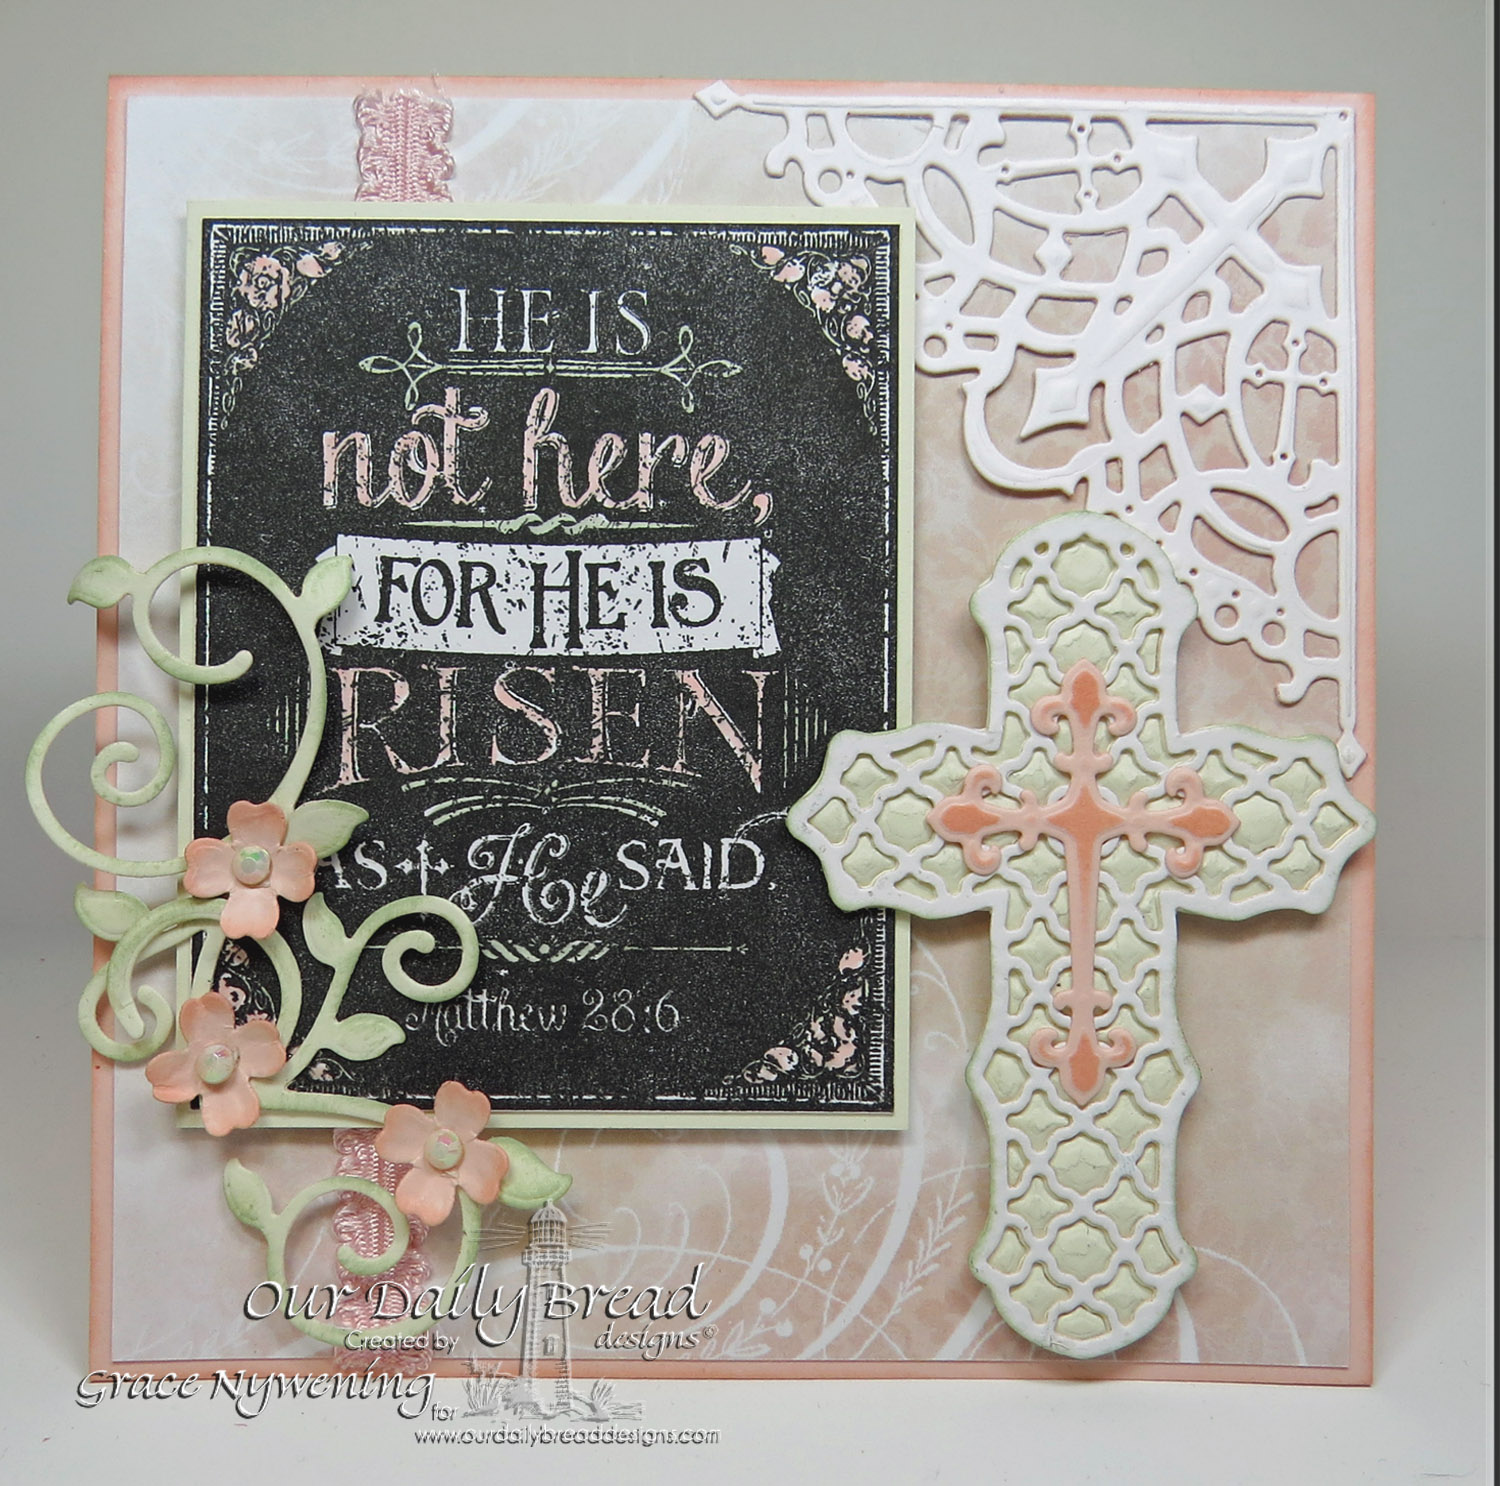 Stamps - Our Daily Bread Designs He Is Risen Chalkboard, ODBD Custom Fancy Foliage Die, ODBD Custom Ornamental Crosses Dies, ODBD Custom Decorative Corners Dies, ODBD Shabby Rose Paper Collection